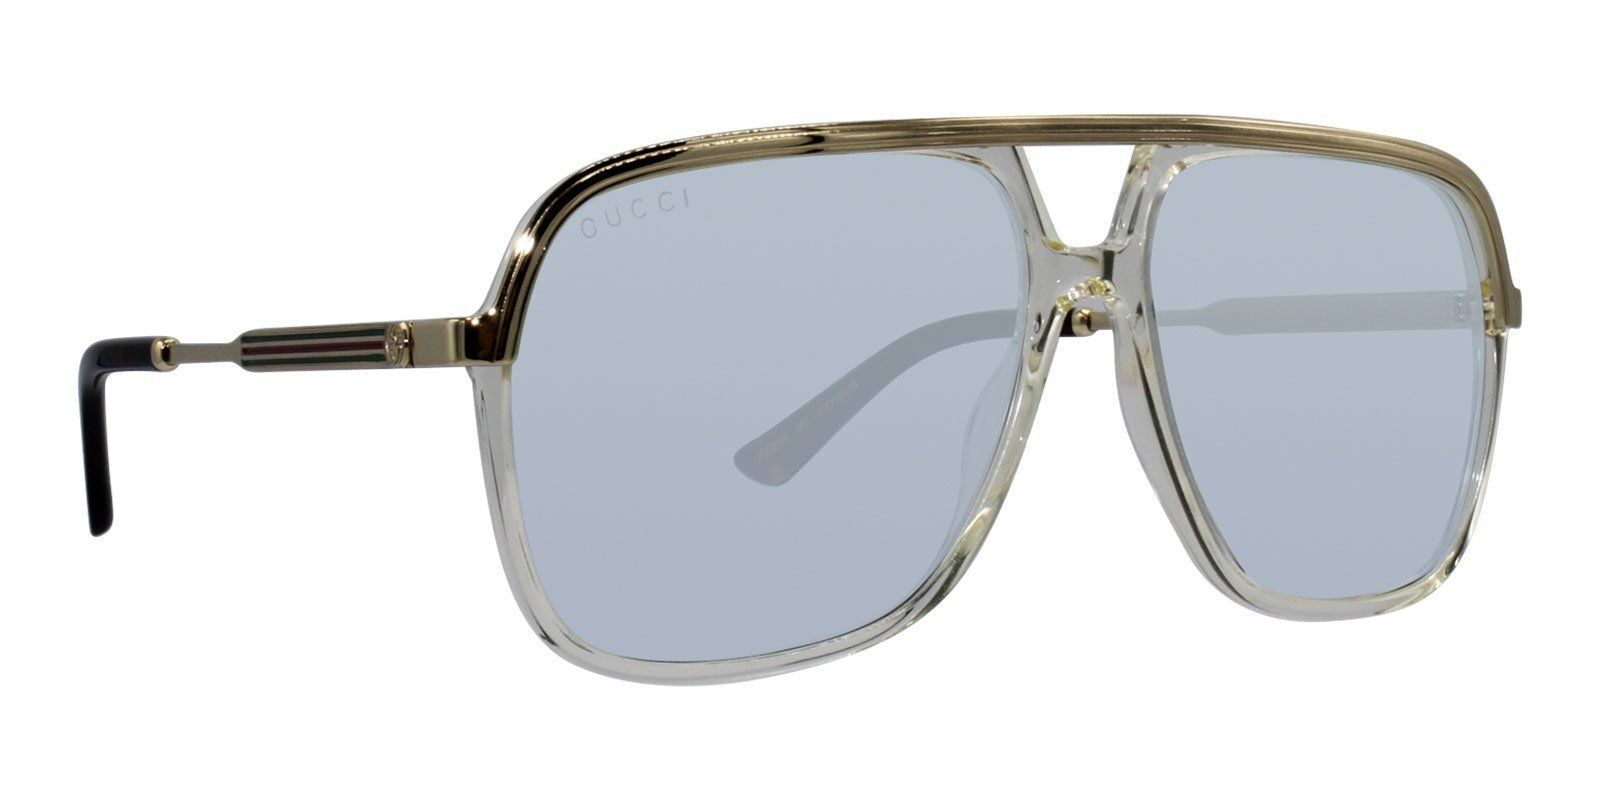 014c1bdffd Gucci - GG0200S Gold Clear - Clear-sunglasses-Designer Eyes ...